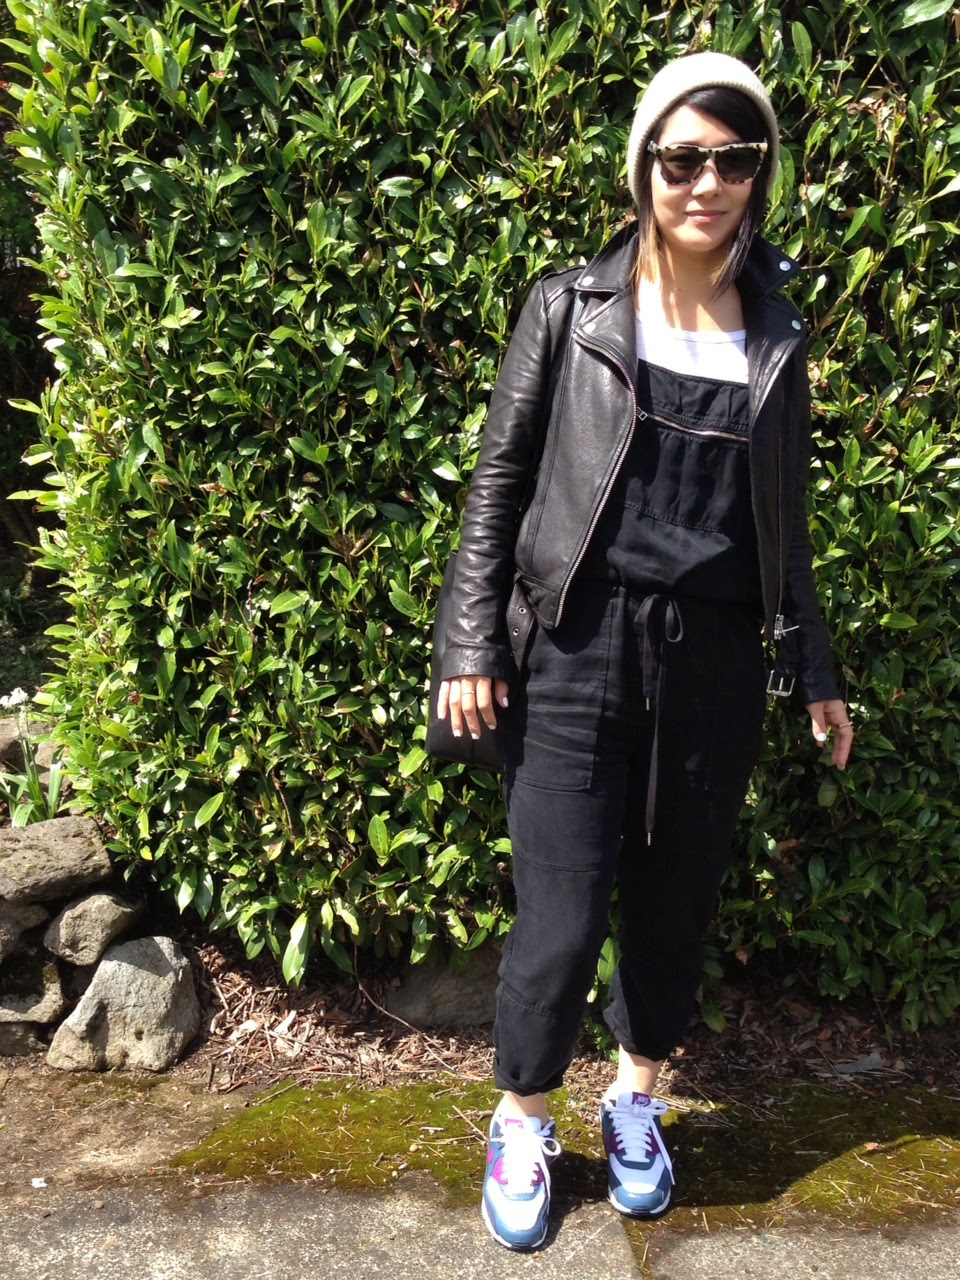 fashion blog the ptown girls blogger portland what i work yoshimi ootd streetstyle post